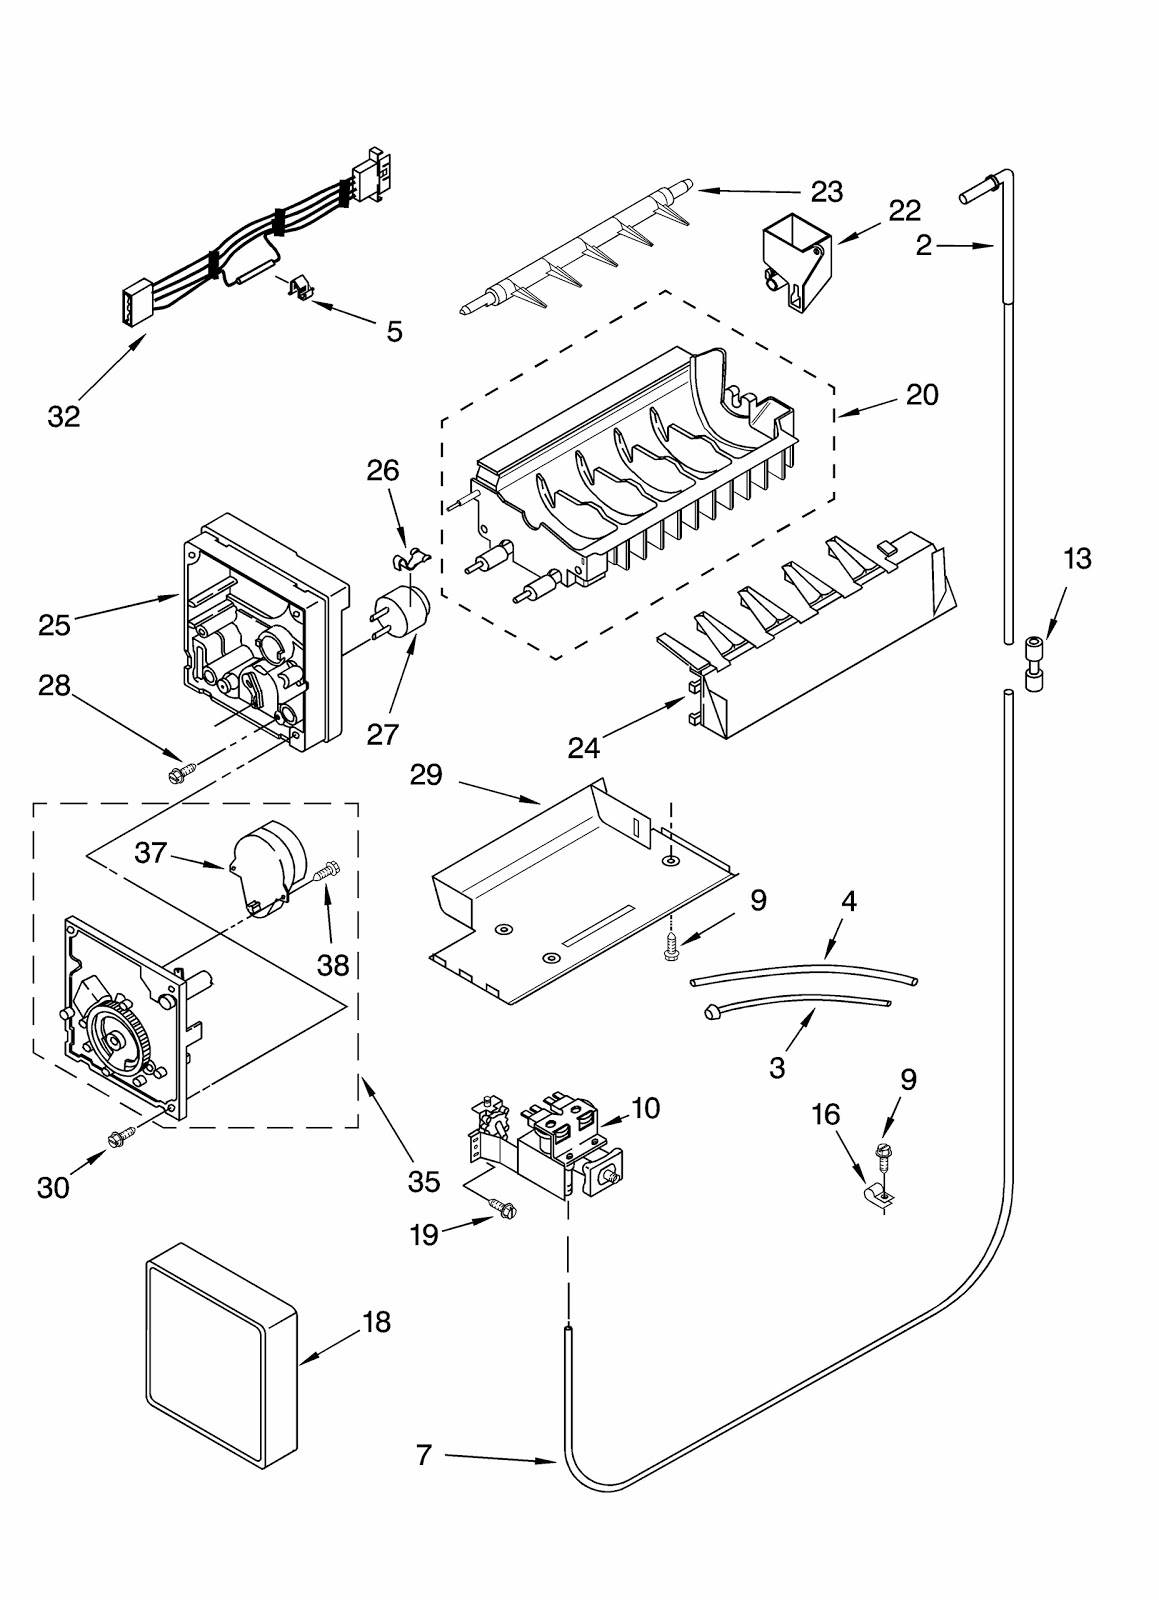 wiring diagram on whirlpool ice maker wiring harness adapter freeice maker wiring harness diagram box wiring diagramim ice maker wiring harness diagram electricity site ge